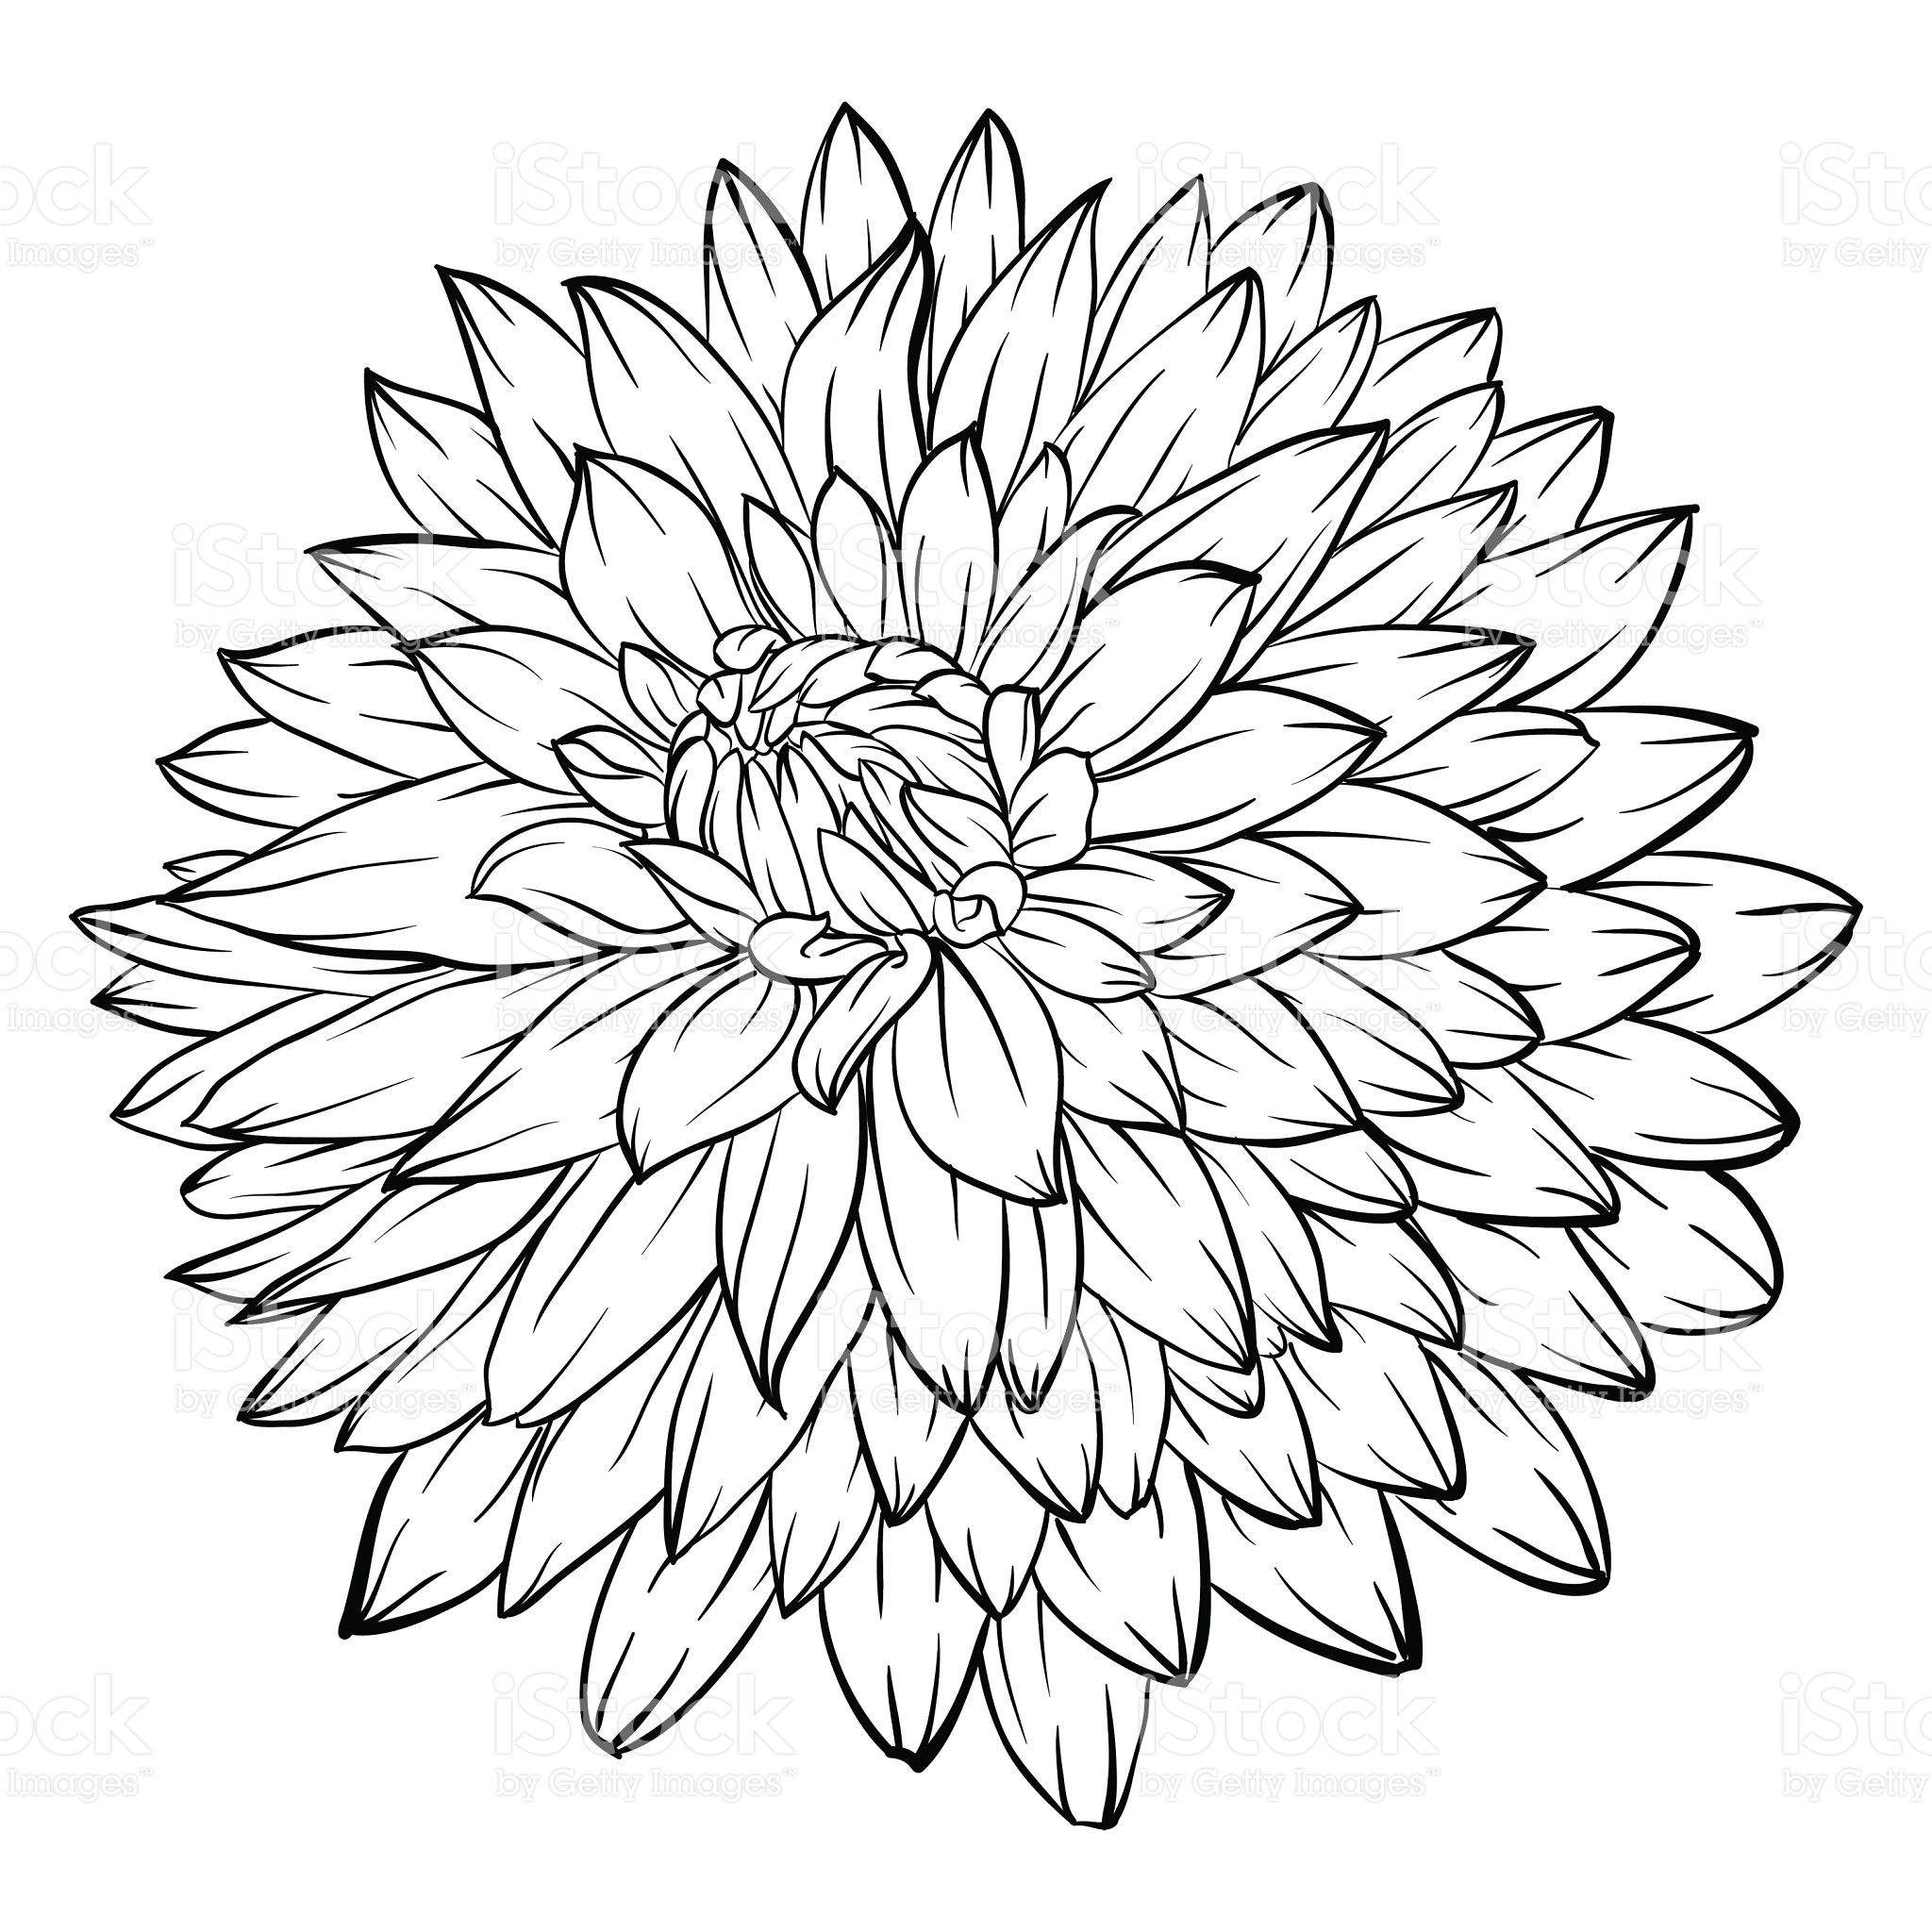 coloring flower clipart black and white free black sunflower cliparts download free clip art black coloring and white flower clipart